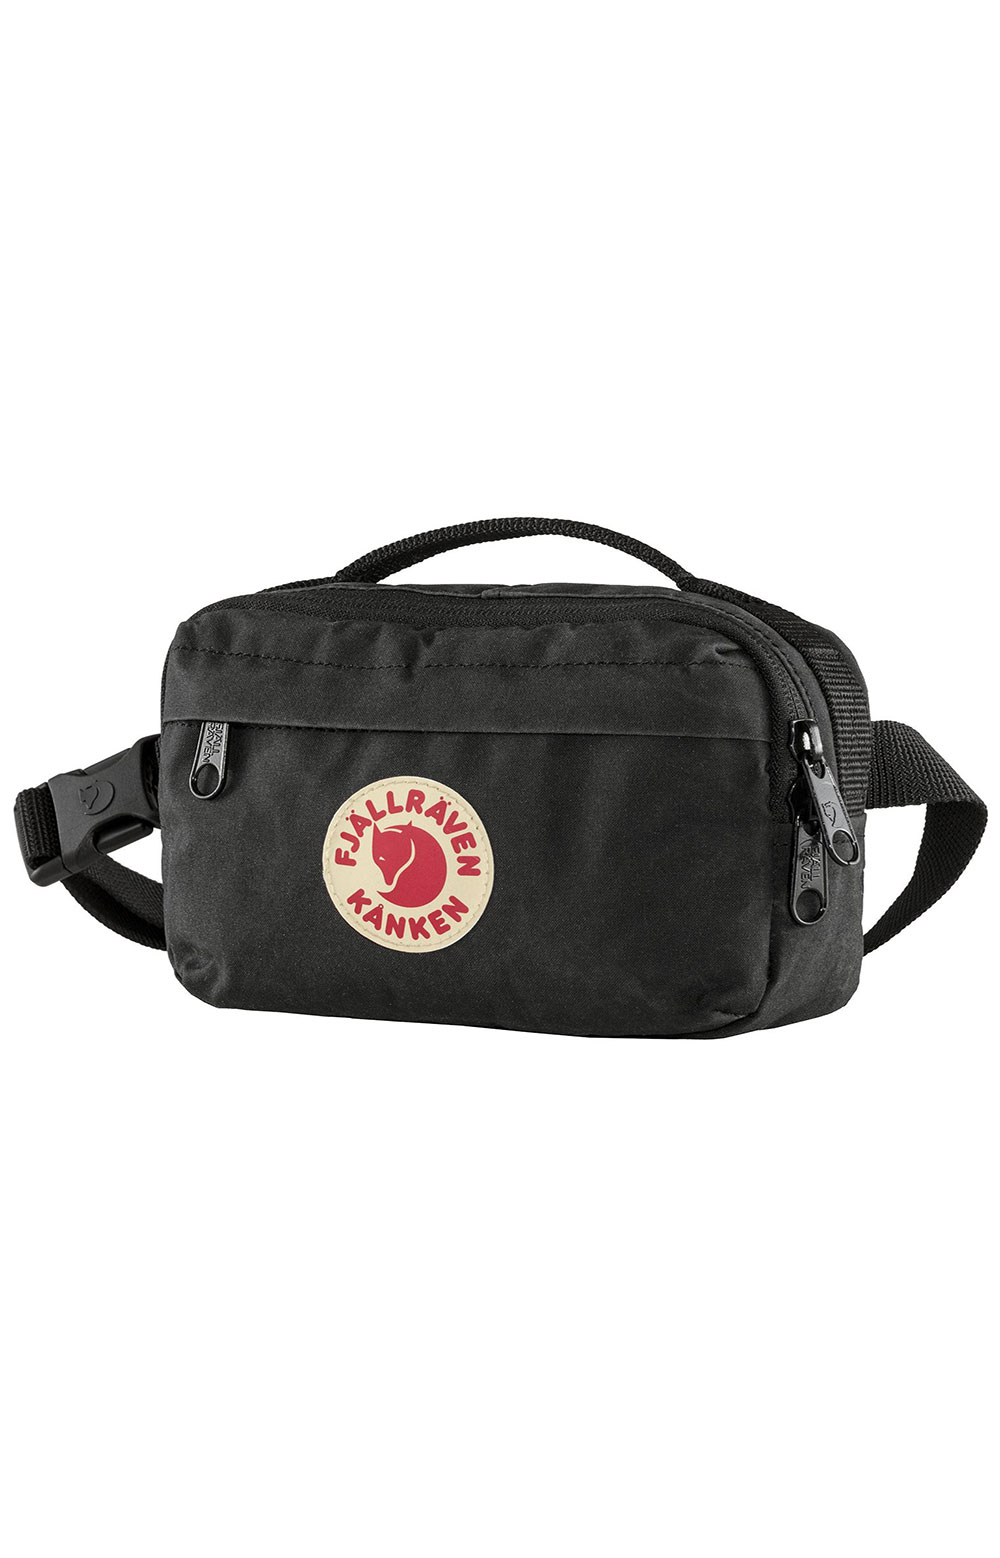 Kanken Hip Pack - Black  3